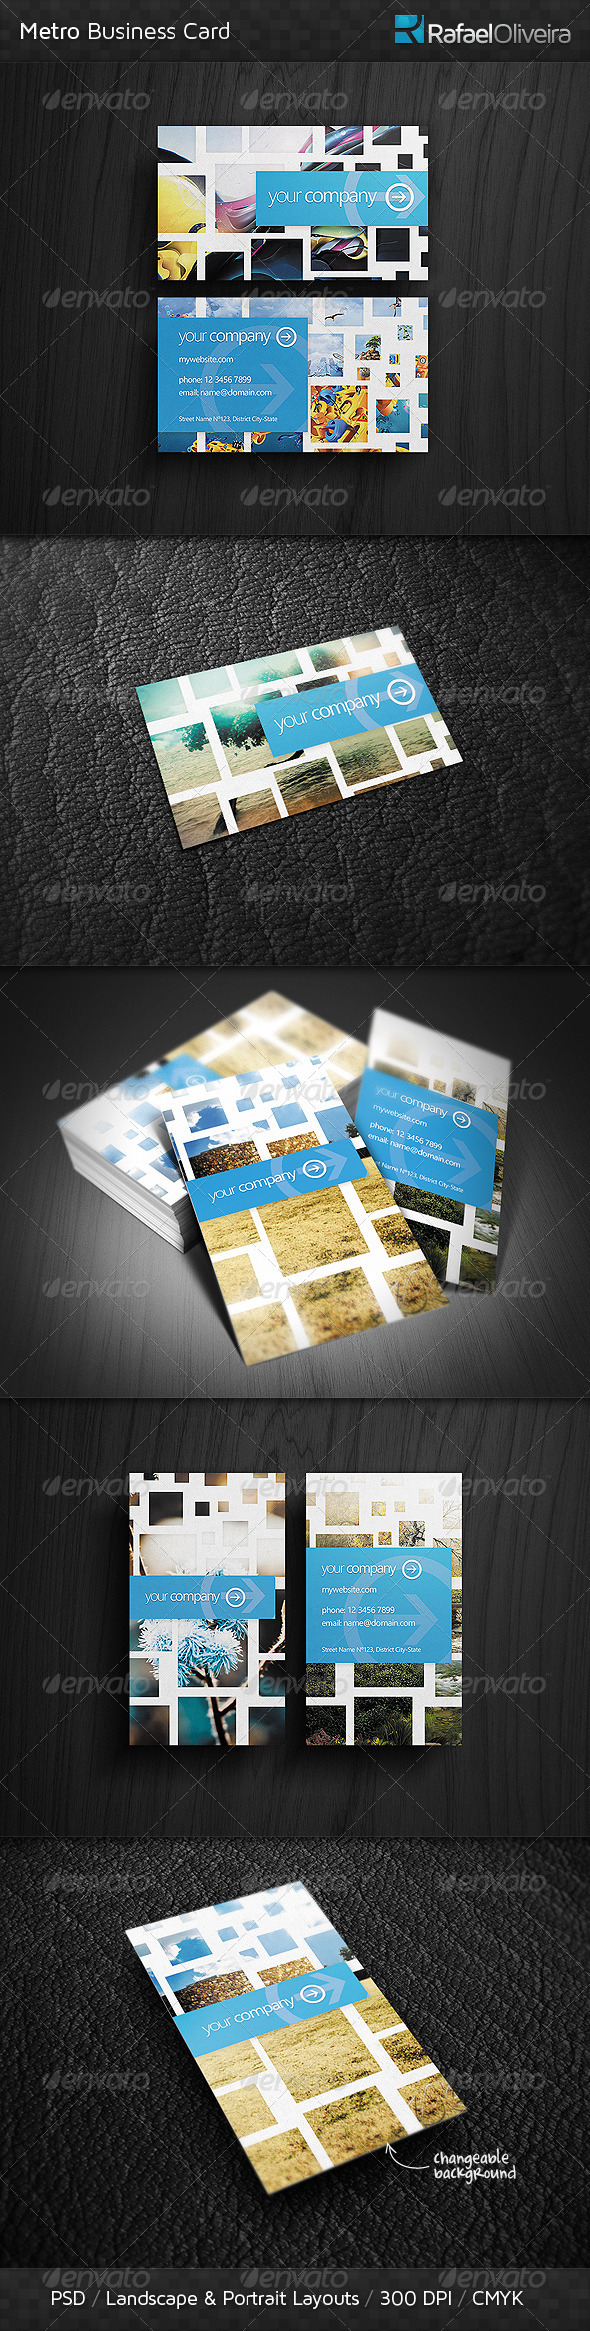 Metro Business Card - Creative Business Cards